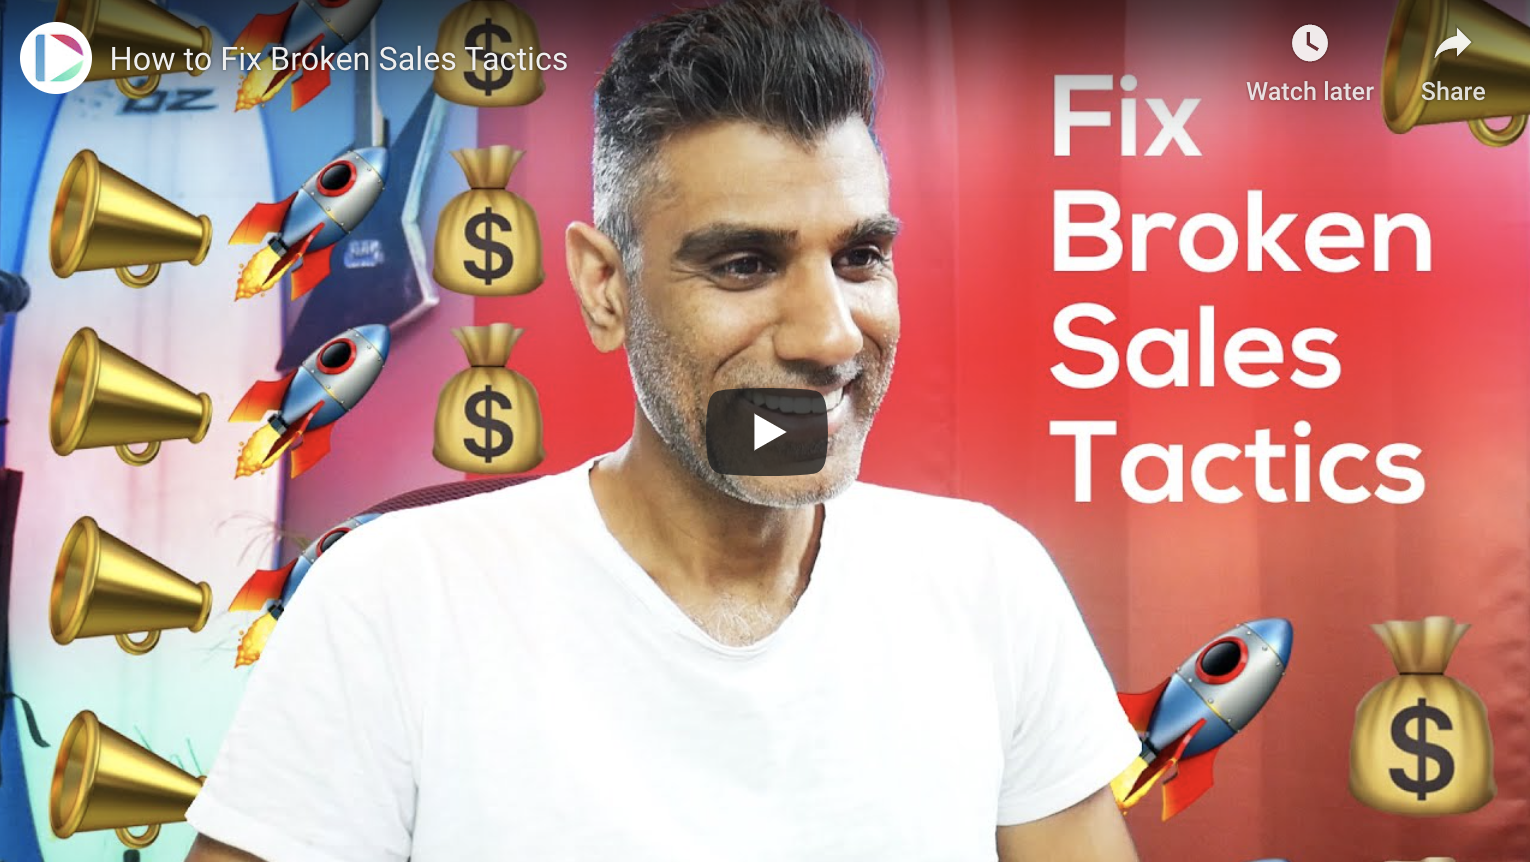 Easy Fixes for Broken Sales Tactics